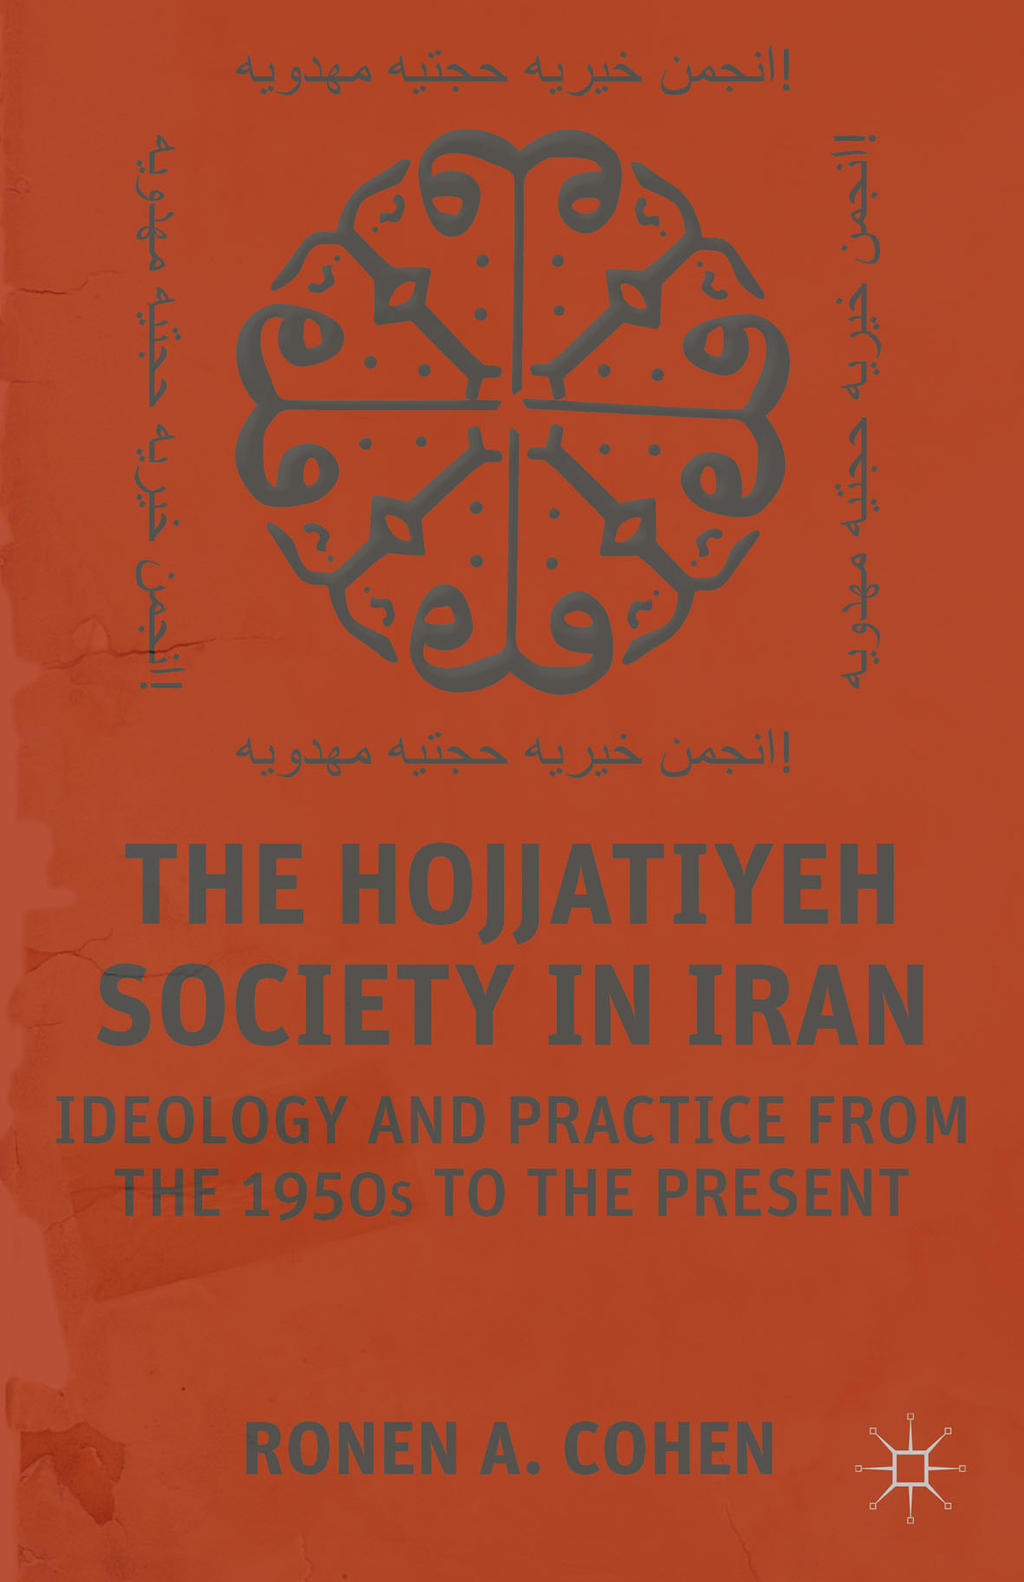 The Hojjatiyeh Society in Iran Ideology and Practice from the 1950s to the Present